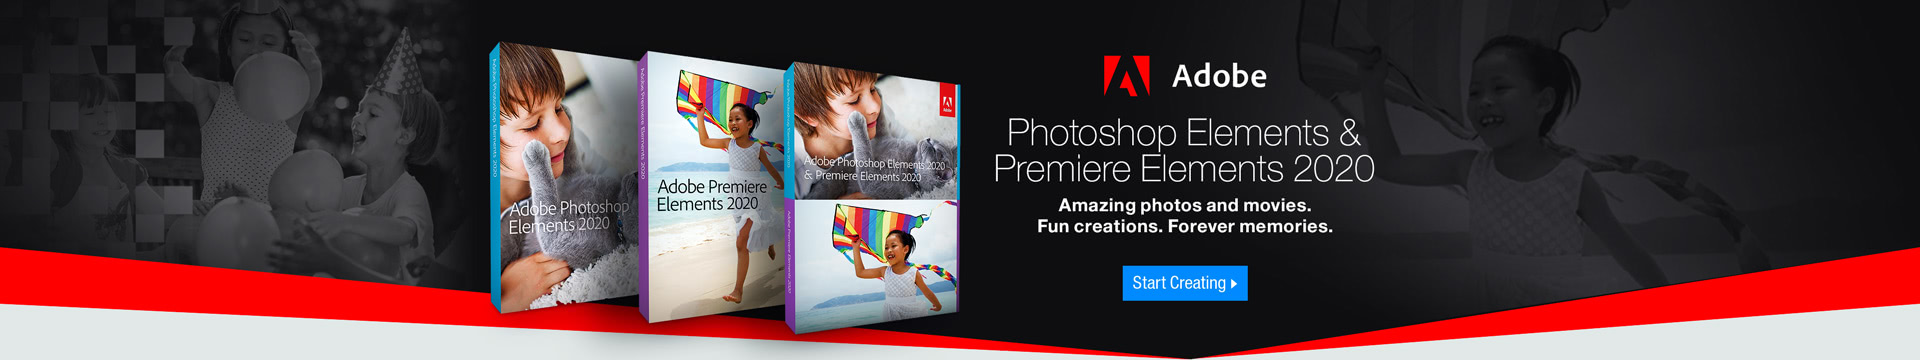 Photoshop elements & premiere elements 2020